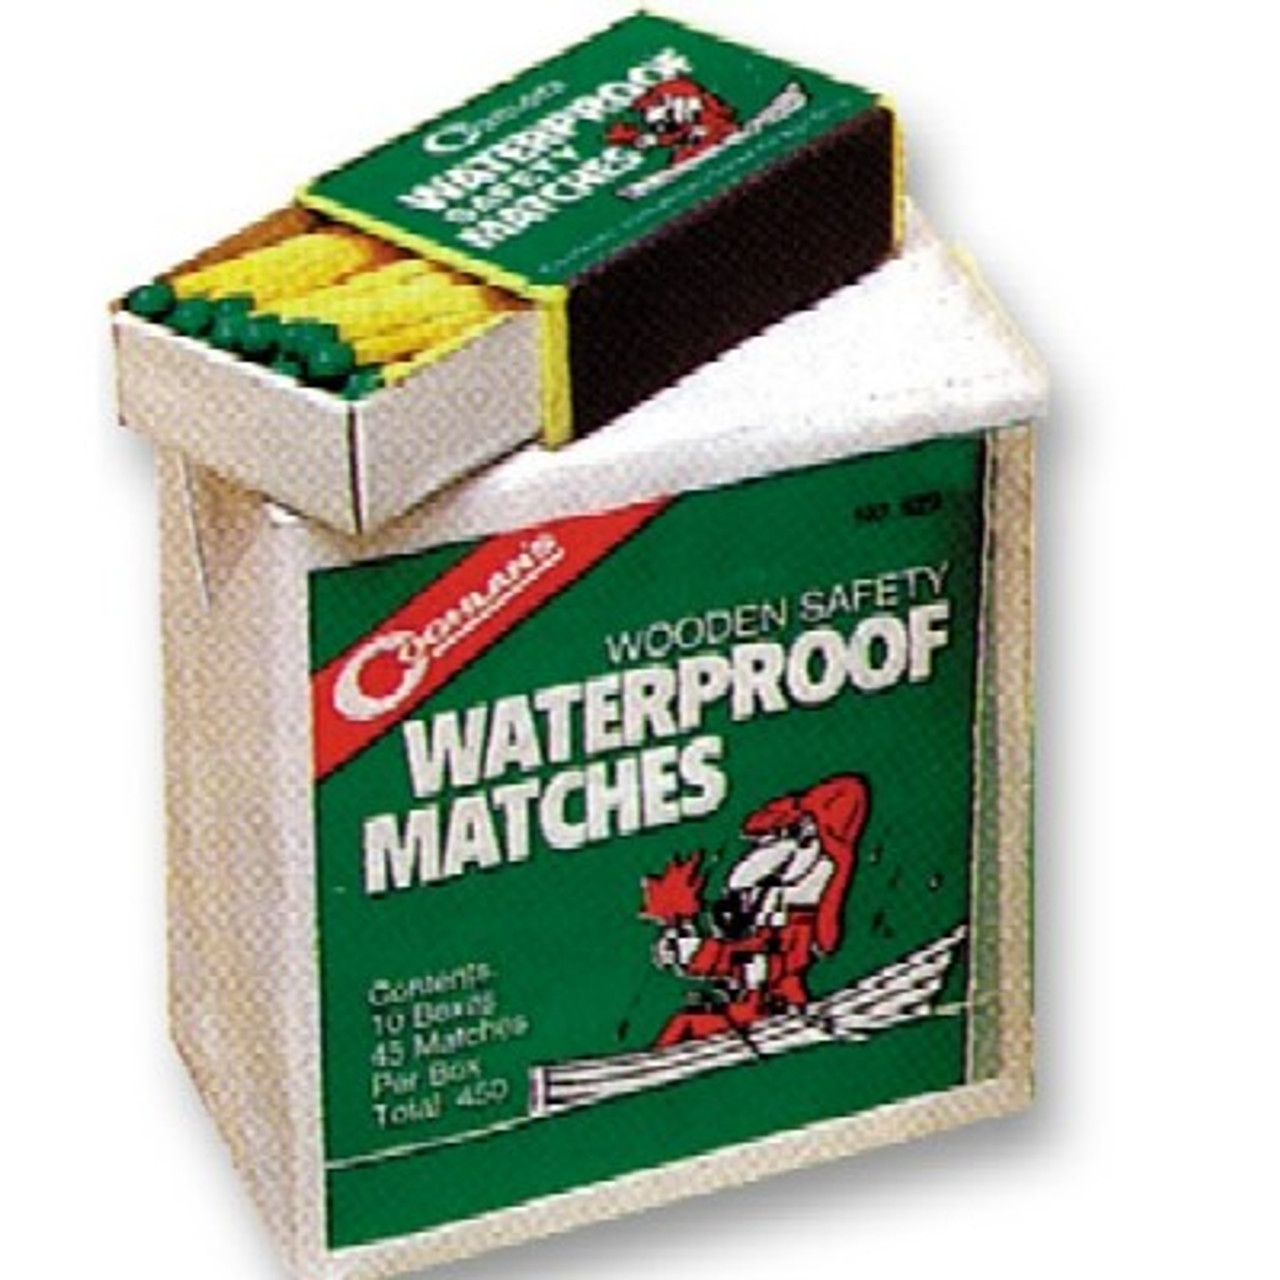 Waterproof Matches (10 boxes of 40 matches)